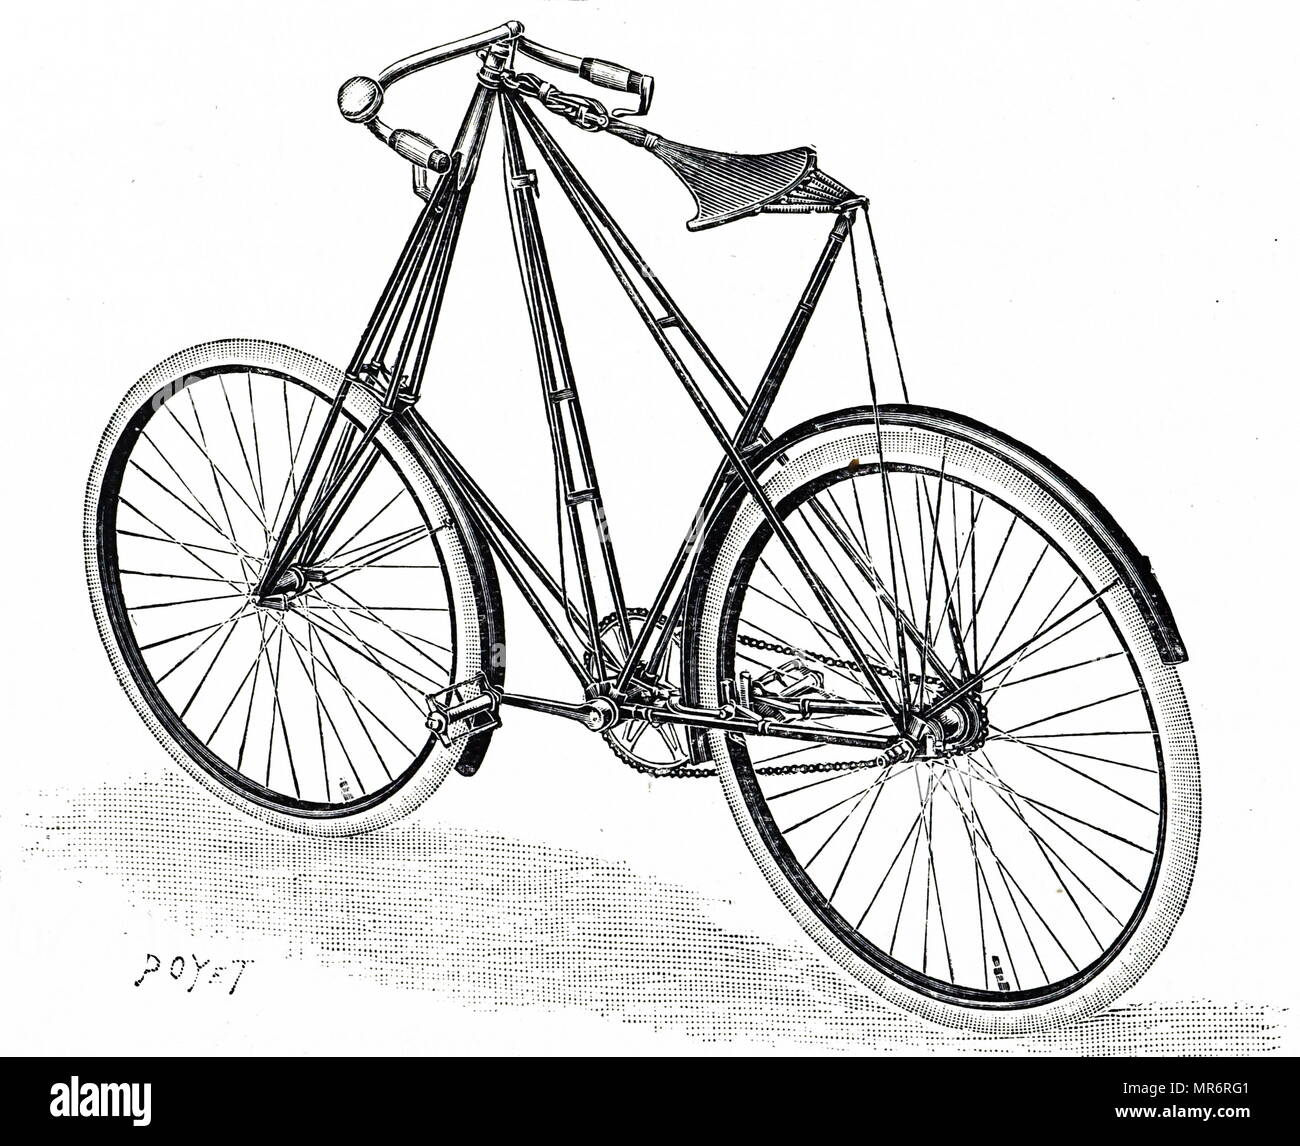 Engraving depicting Pedersen bicycle with a triangular frame. Dated 20th century - Stock Image